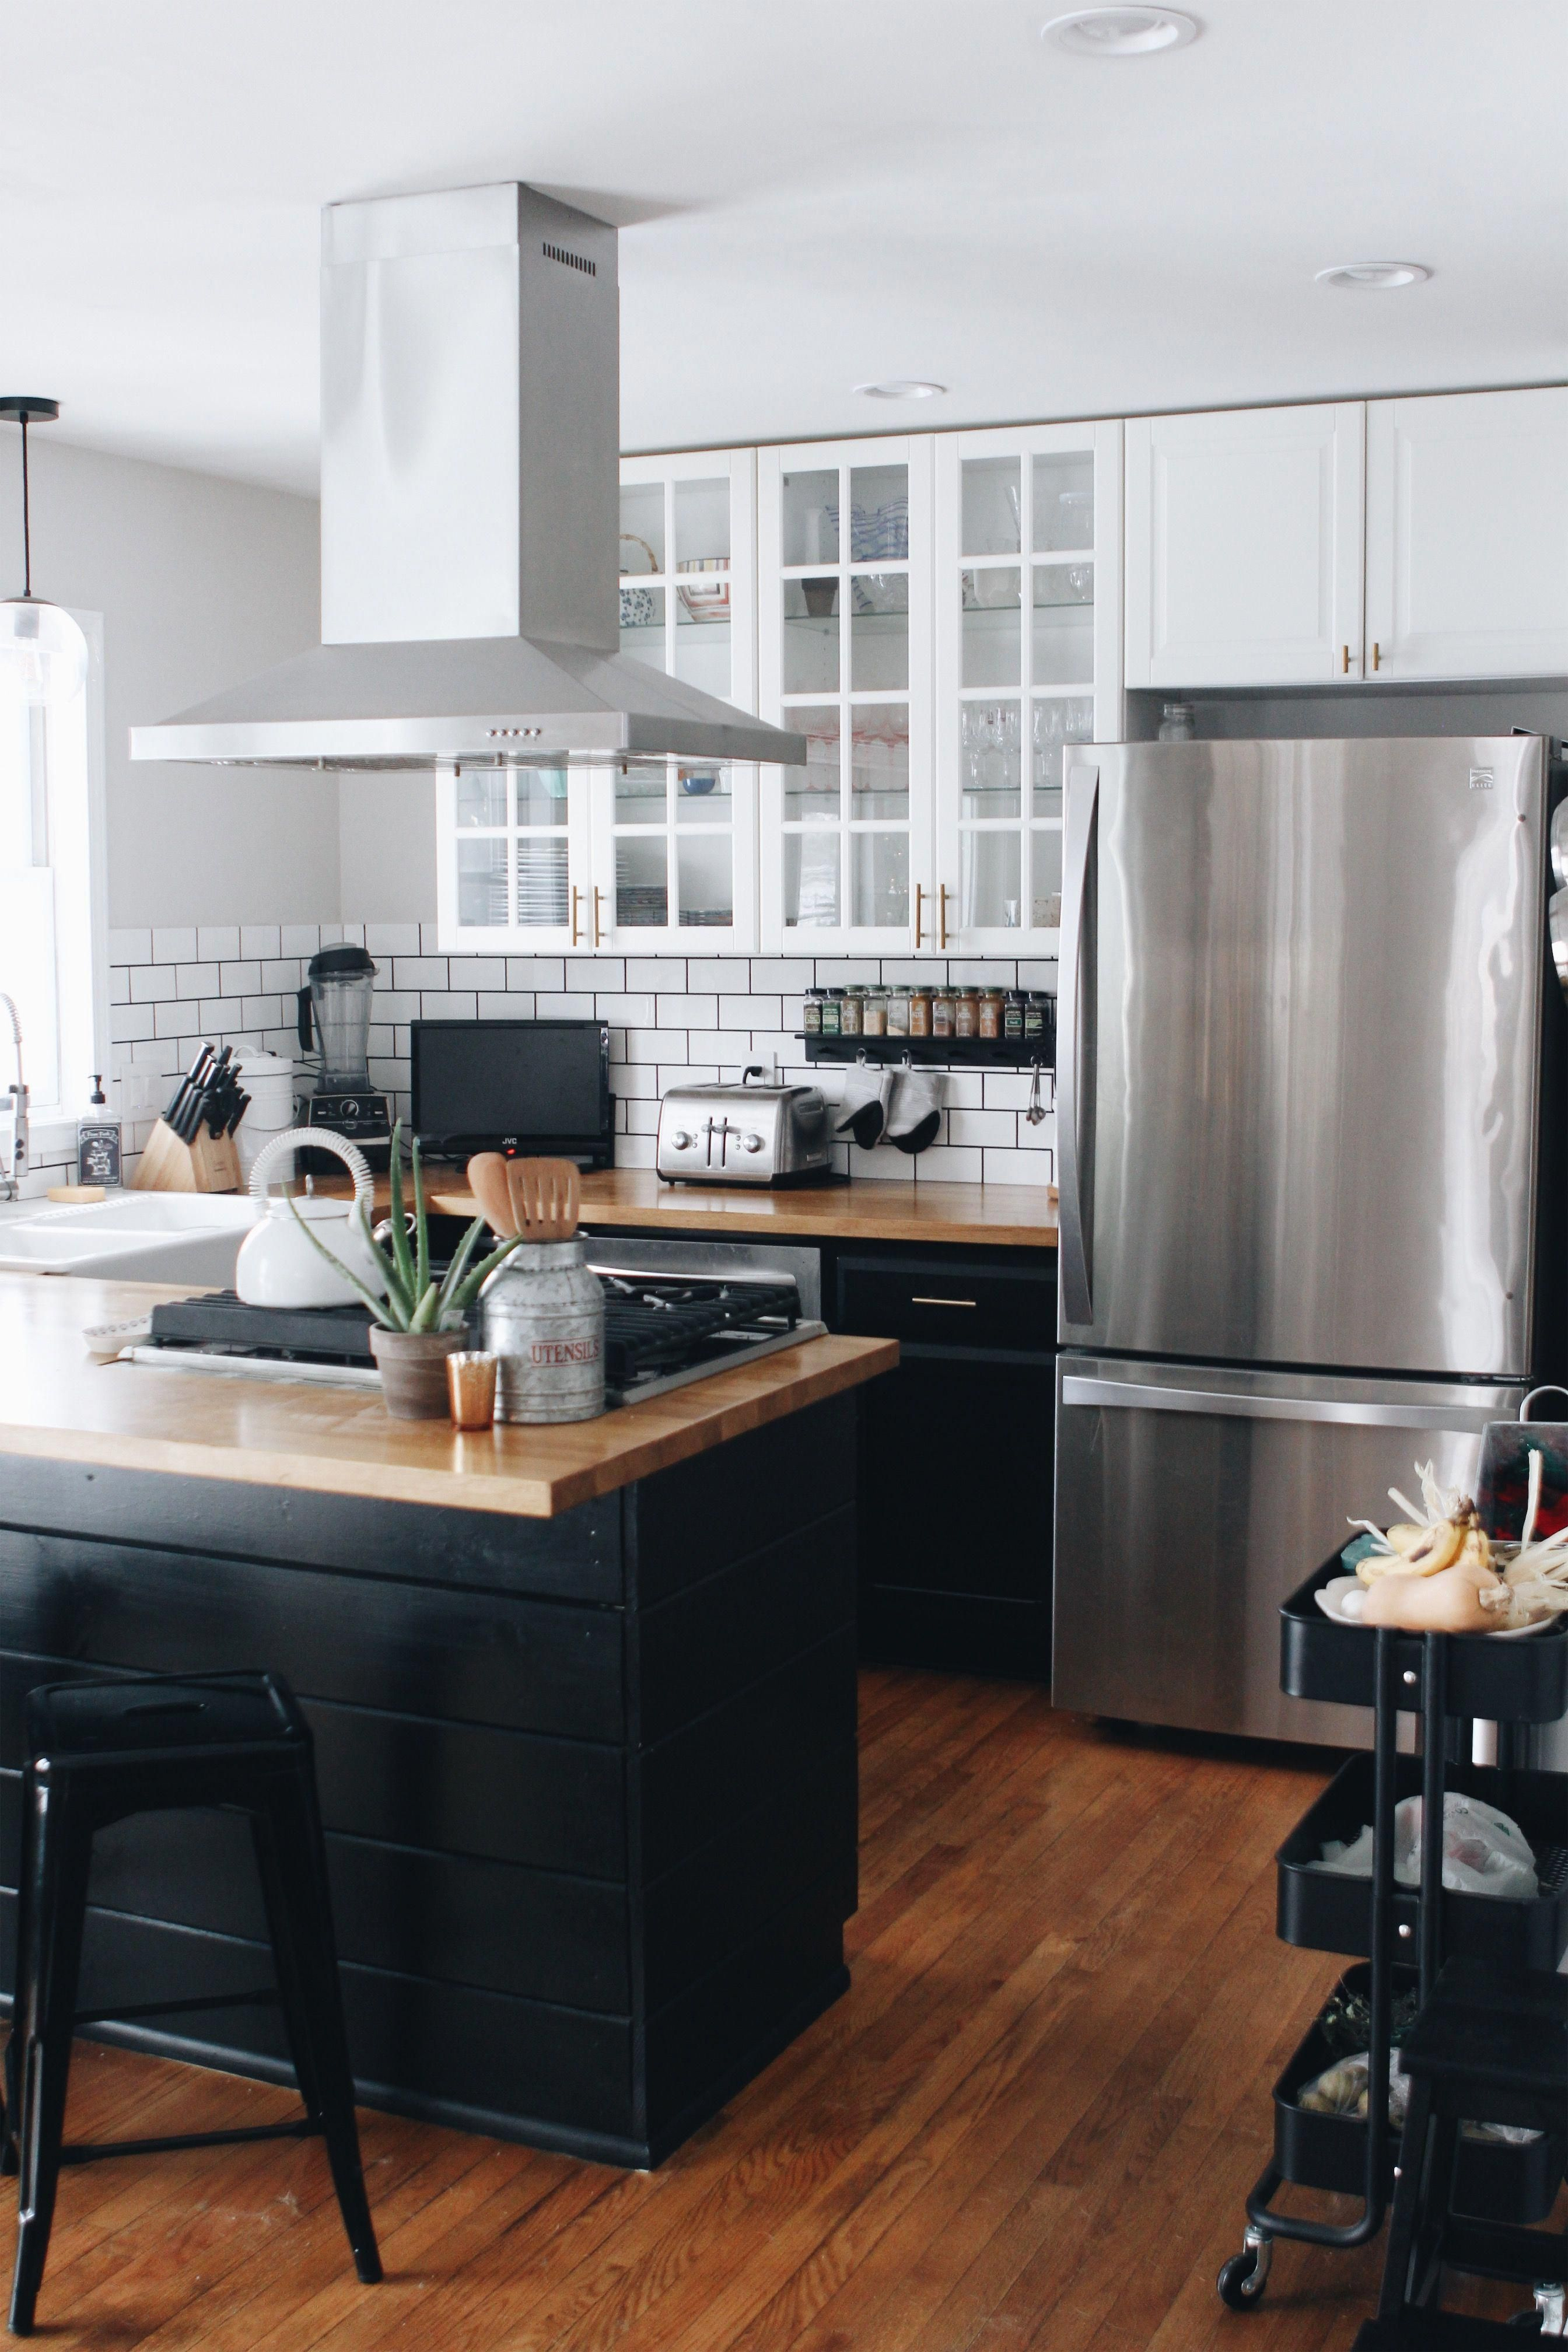 Pin By Amy Ellenger On Homes In 2020 Kitchen Renovation Cost